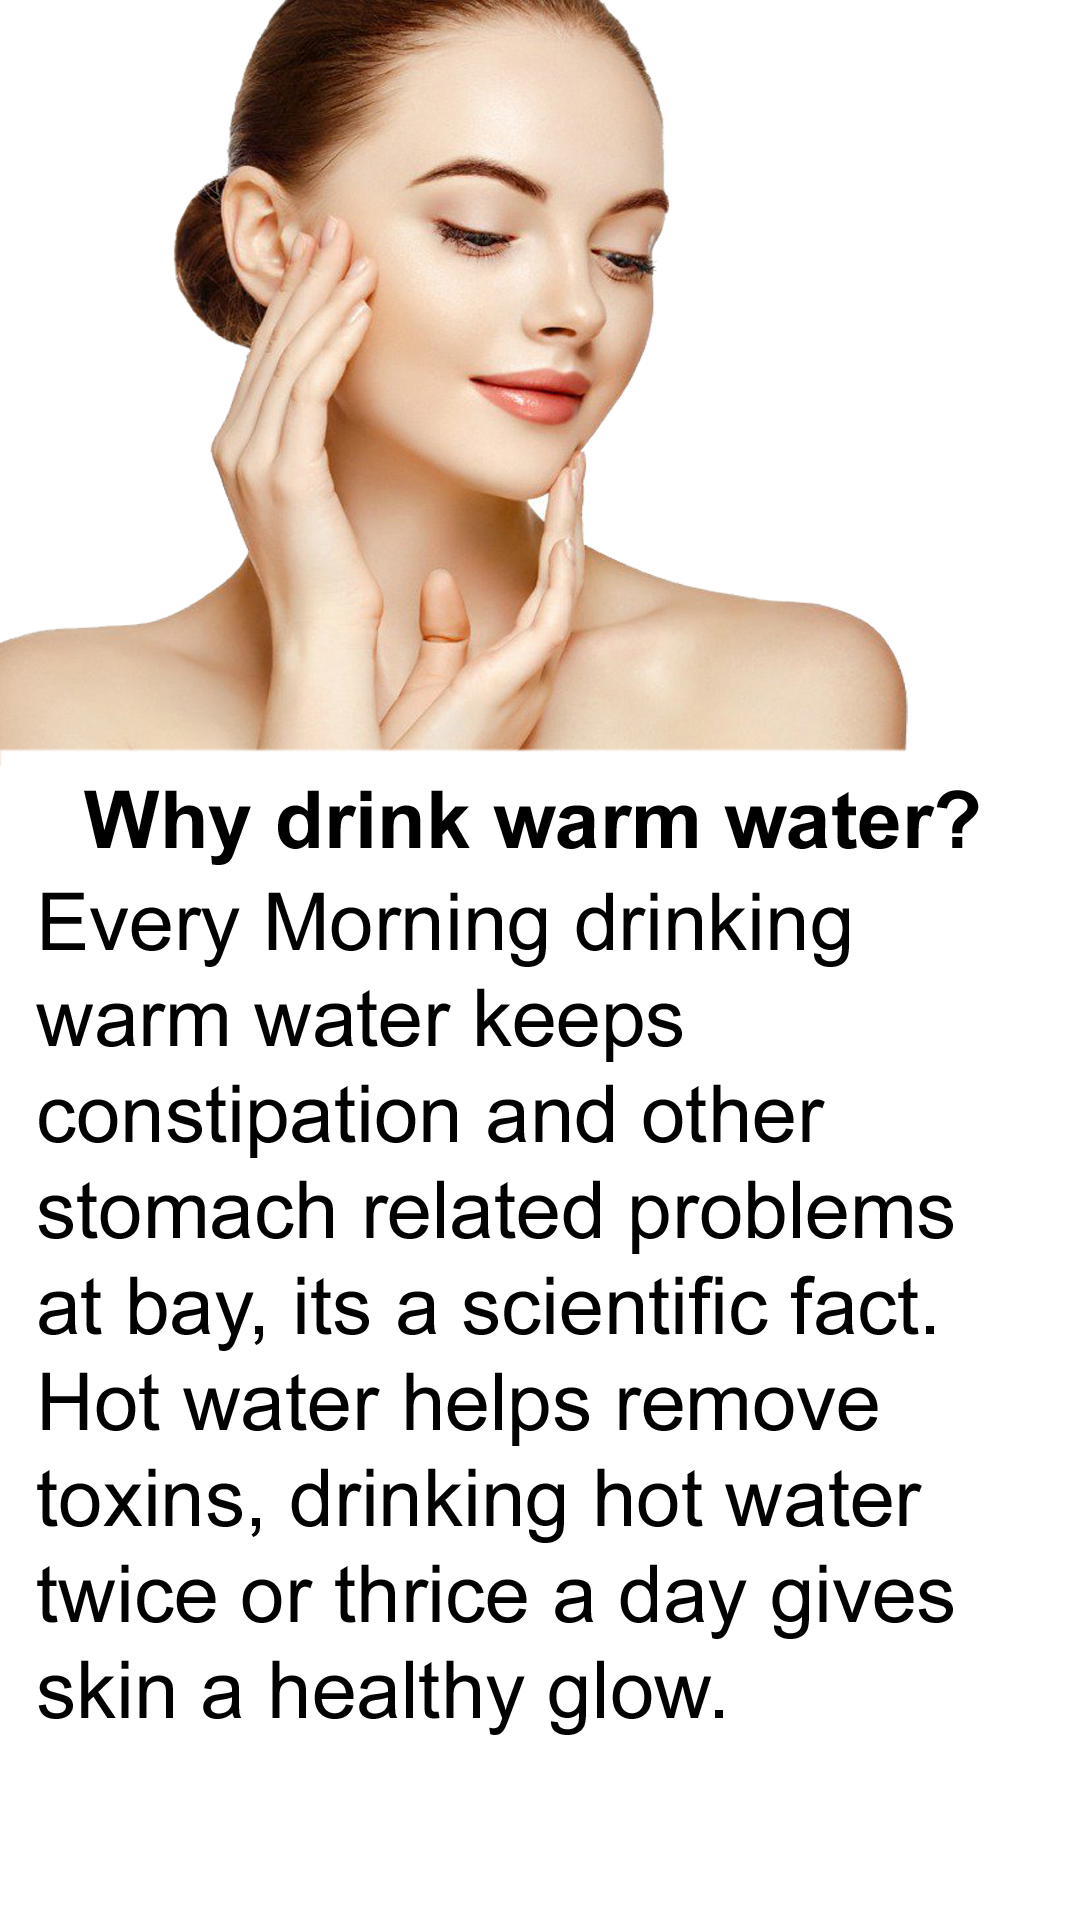 Why Drink Warm Water